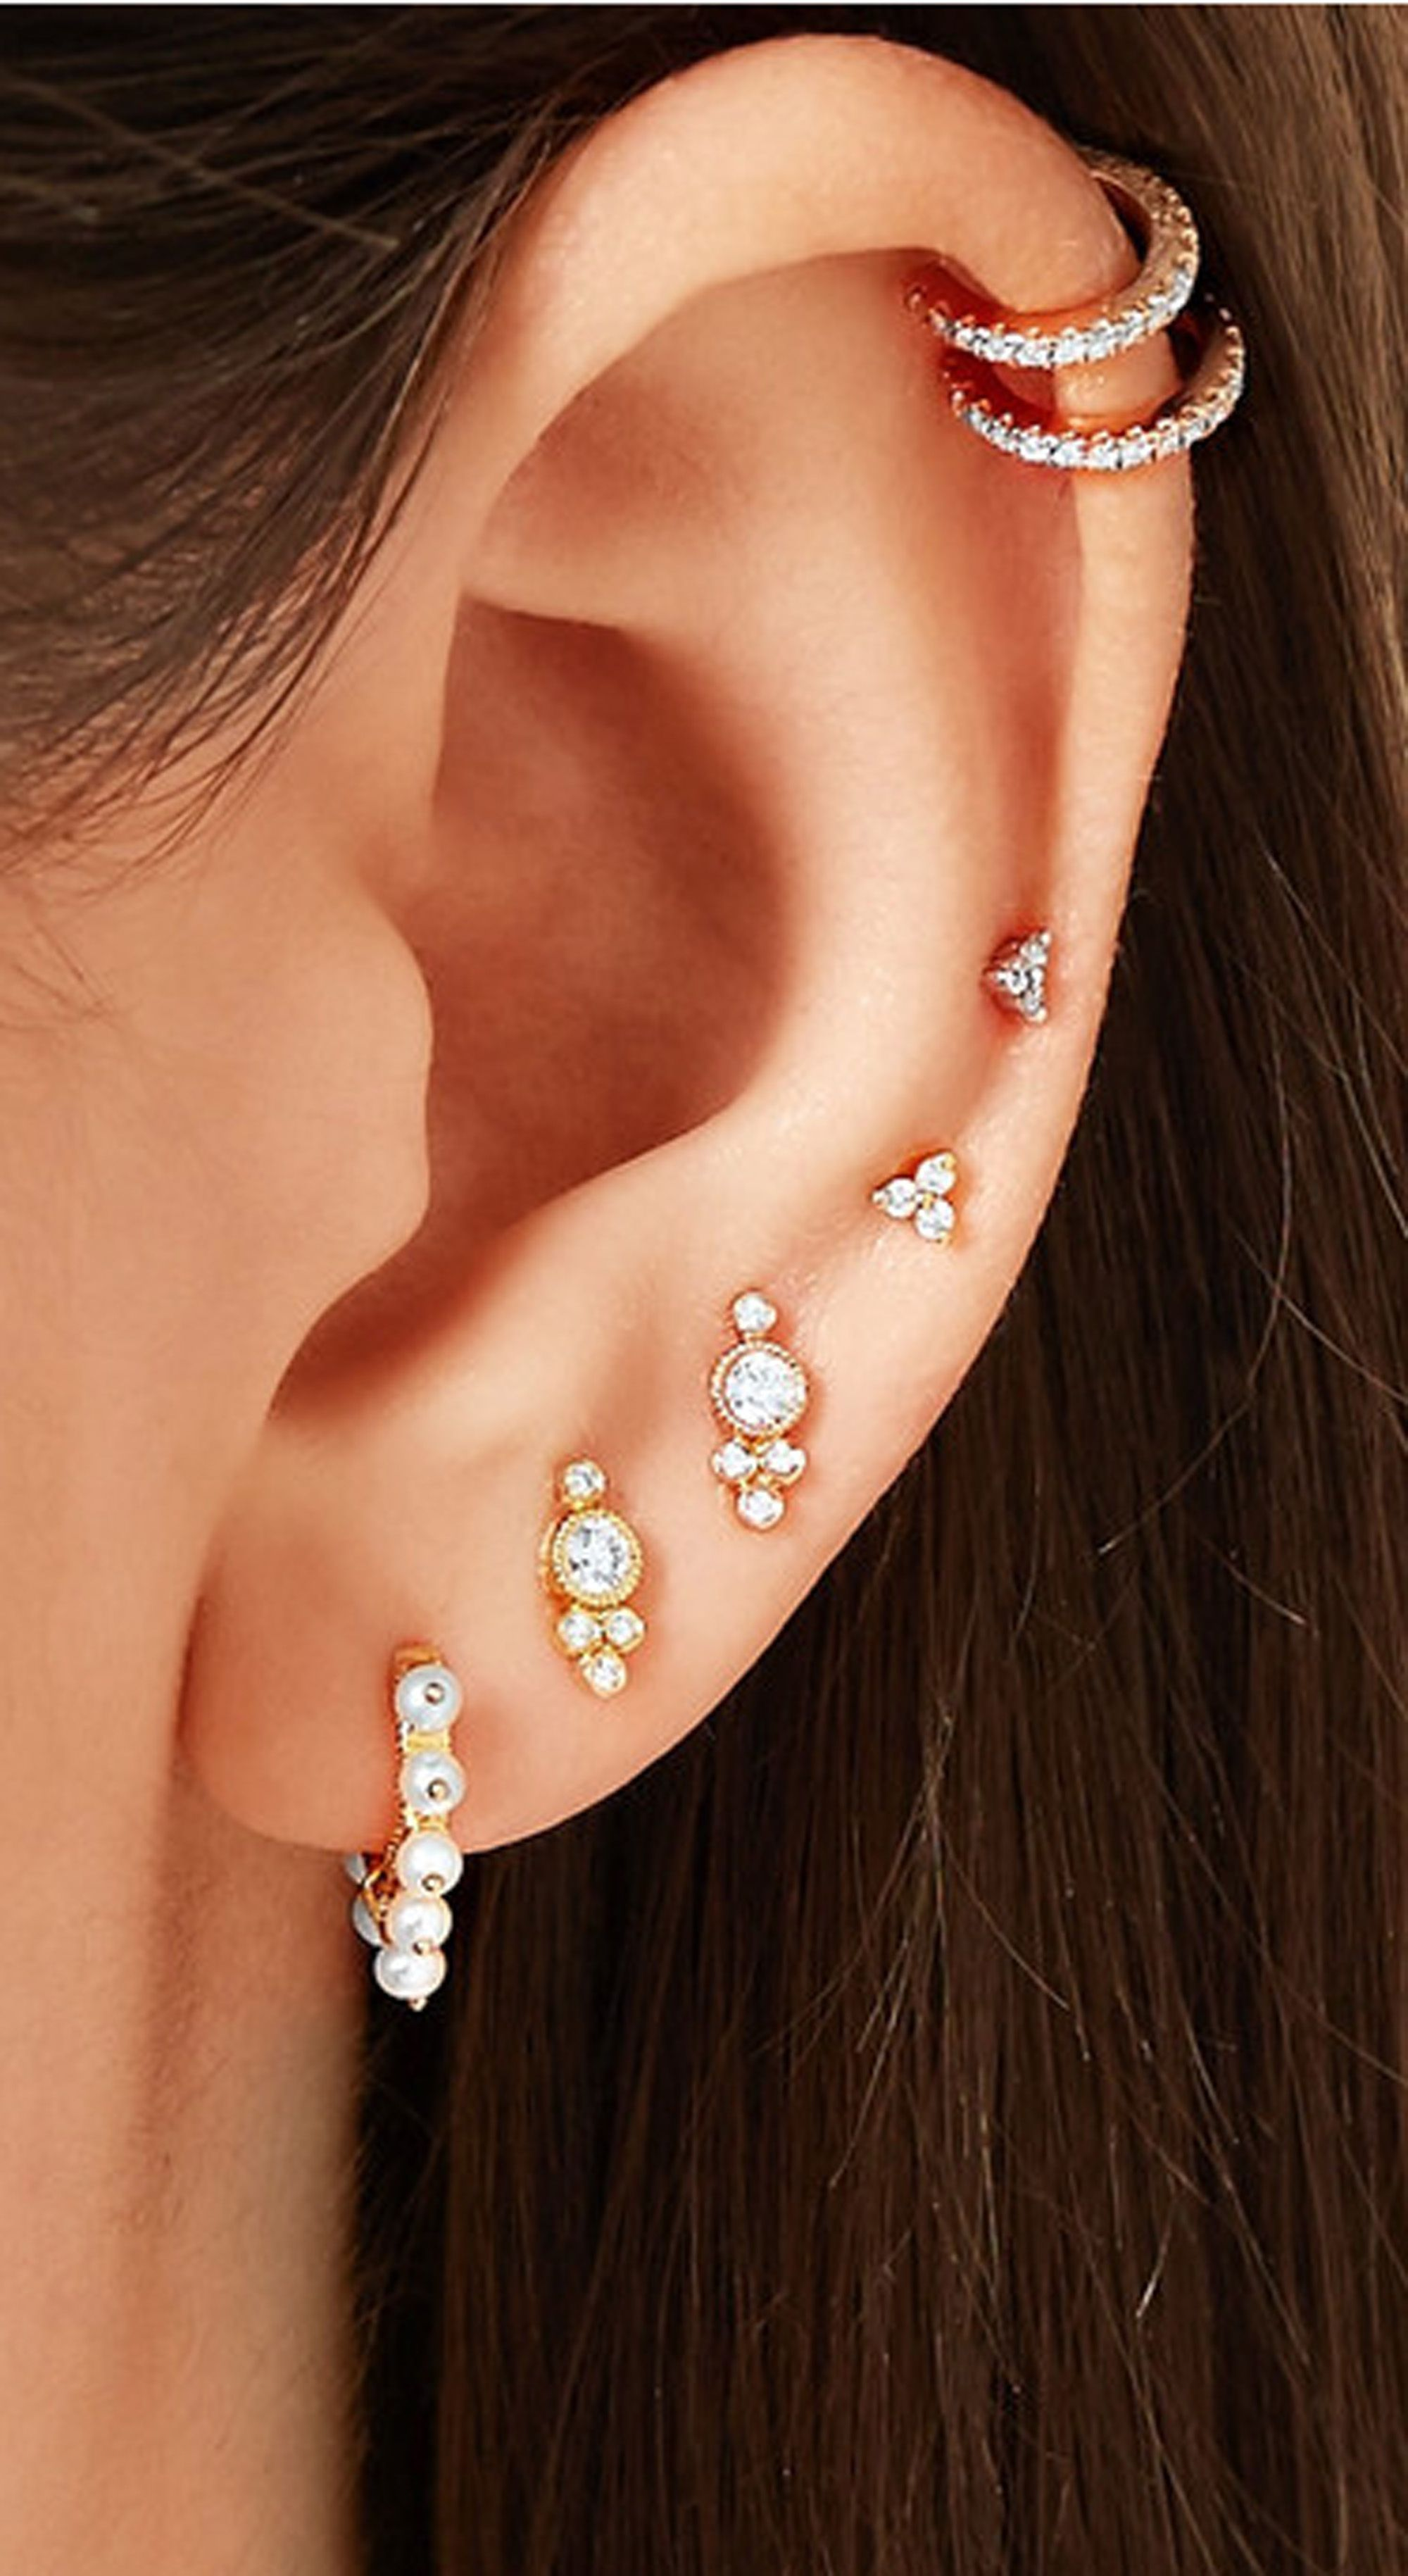 beautiful multiple ear piercing ideas for women #earpiercingideas